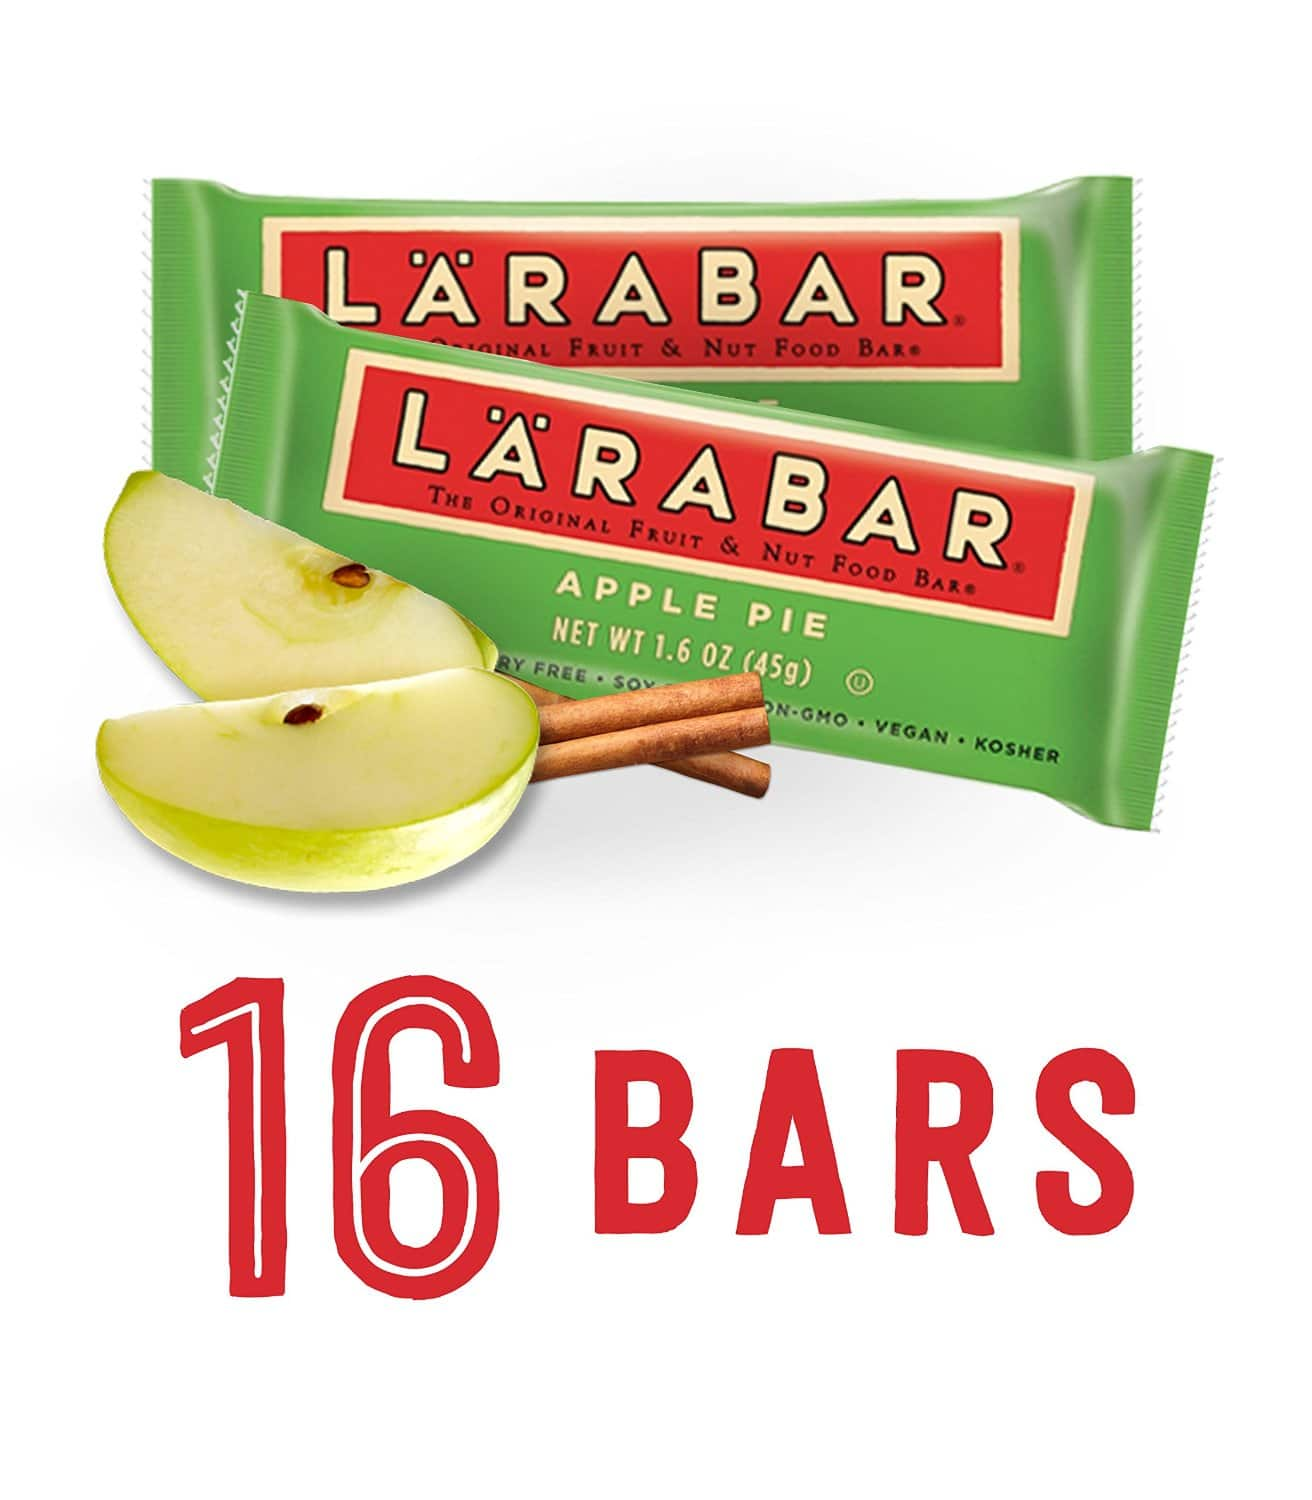 16-Count Larabar Snack Bars (various flavors)  From $11.20 + Free Shipping